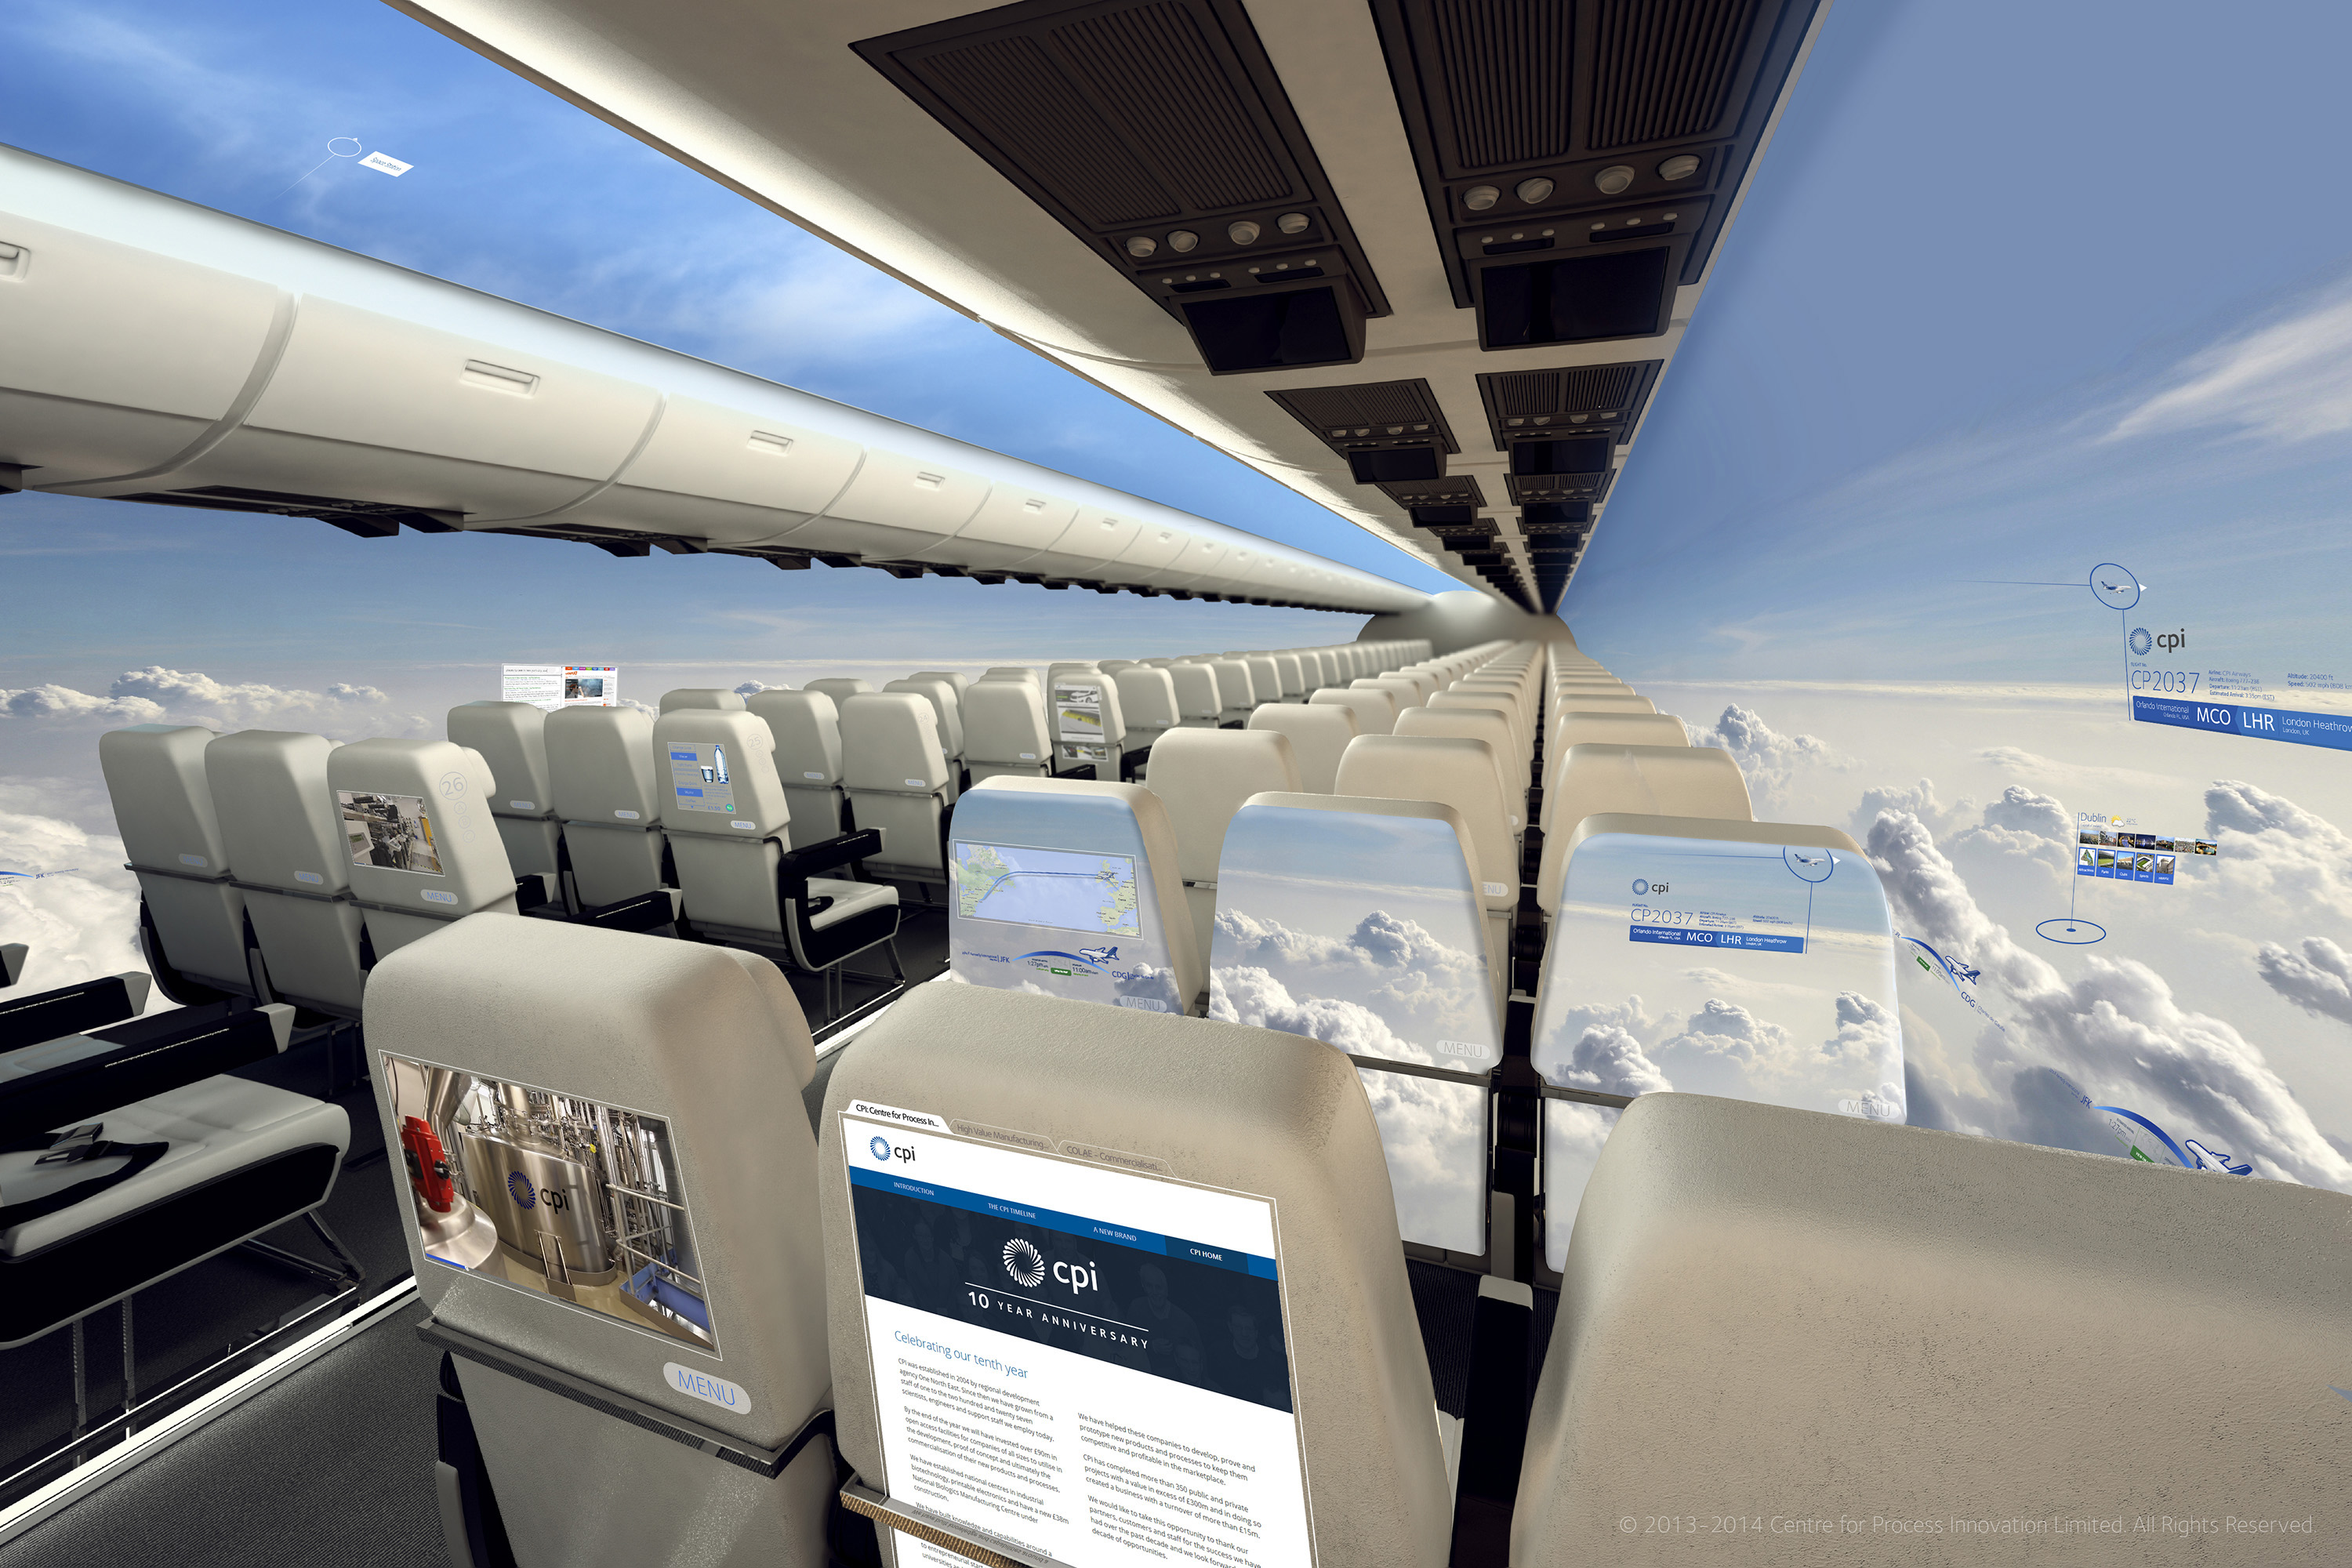 Aircraft cabin concept surrounded by the panoramic views of the windowless aircraft and showing the possible touchscreen and interactive entertainment offered by the wall and seatback displays.